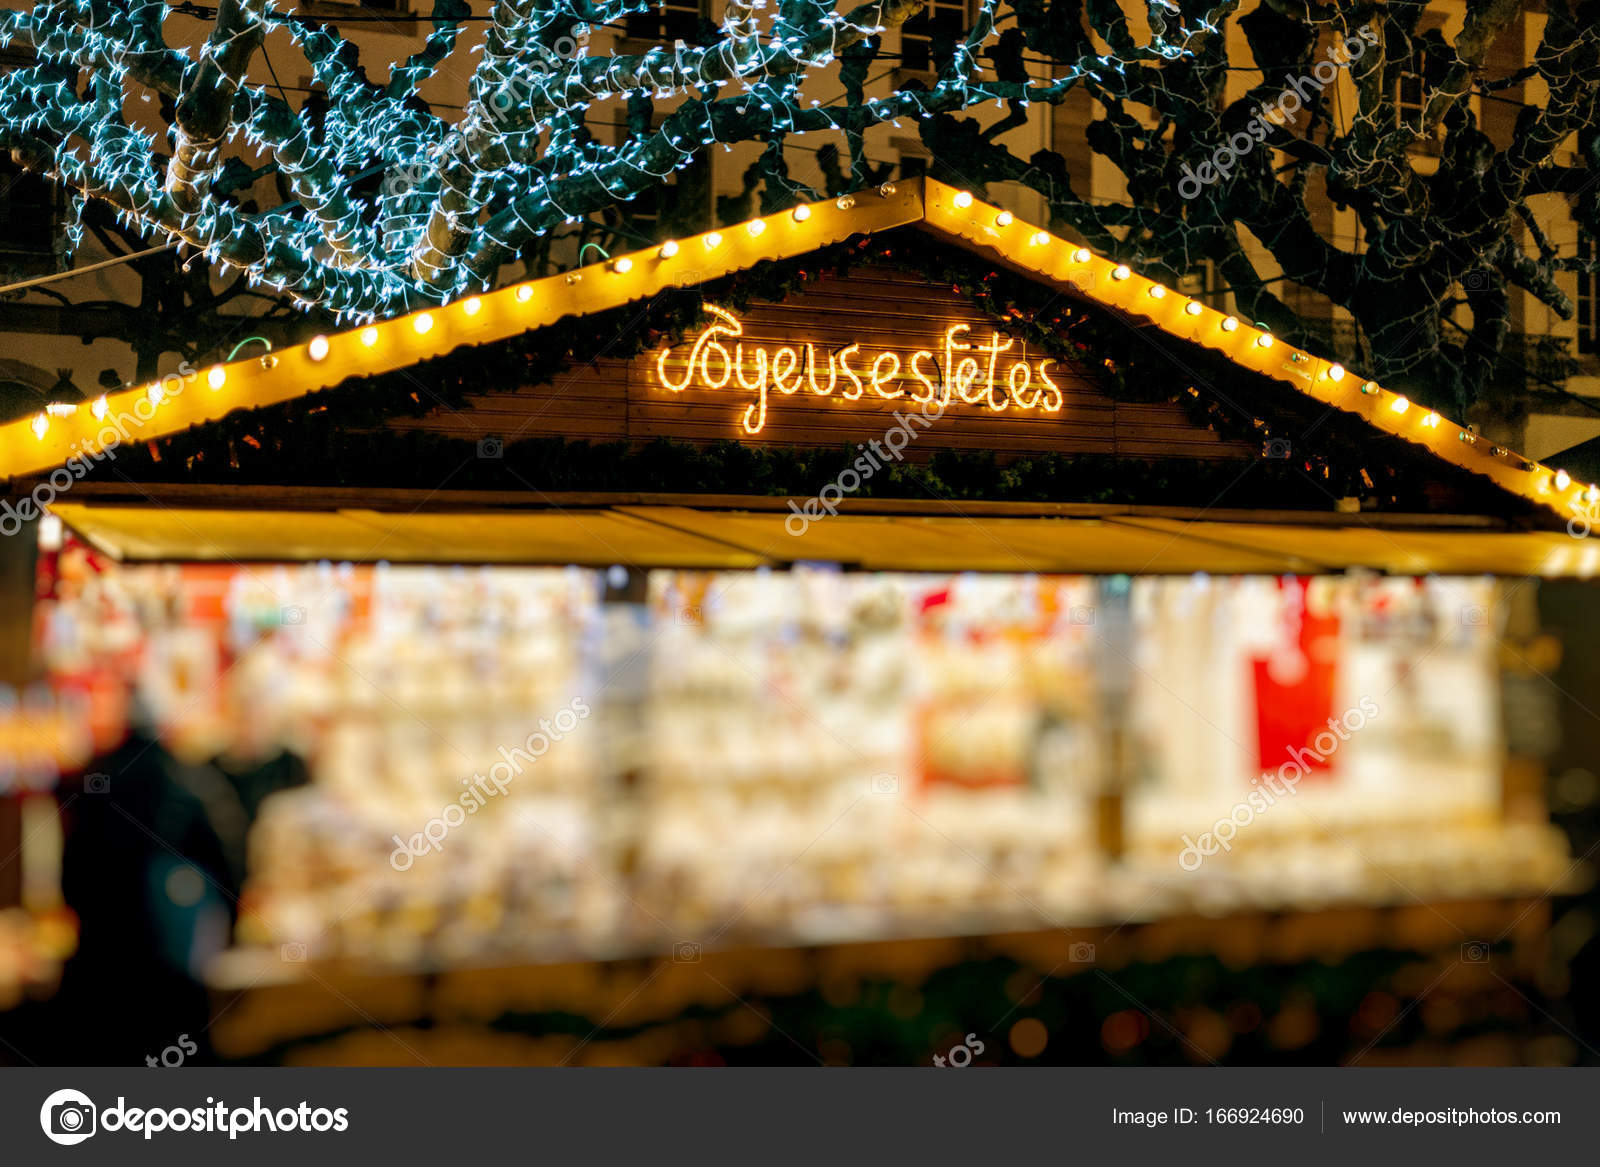 Indian Food Stall Decoration Ideas Kugelhopf Sweets Biscuits Food At Christmas Market Stall Stock Photo C Ifeelstock 166924690